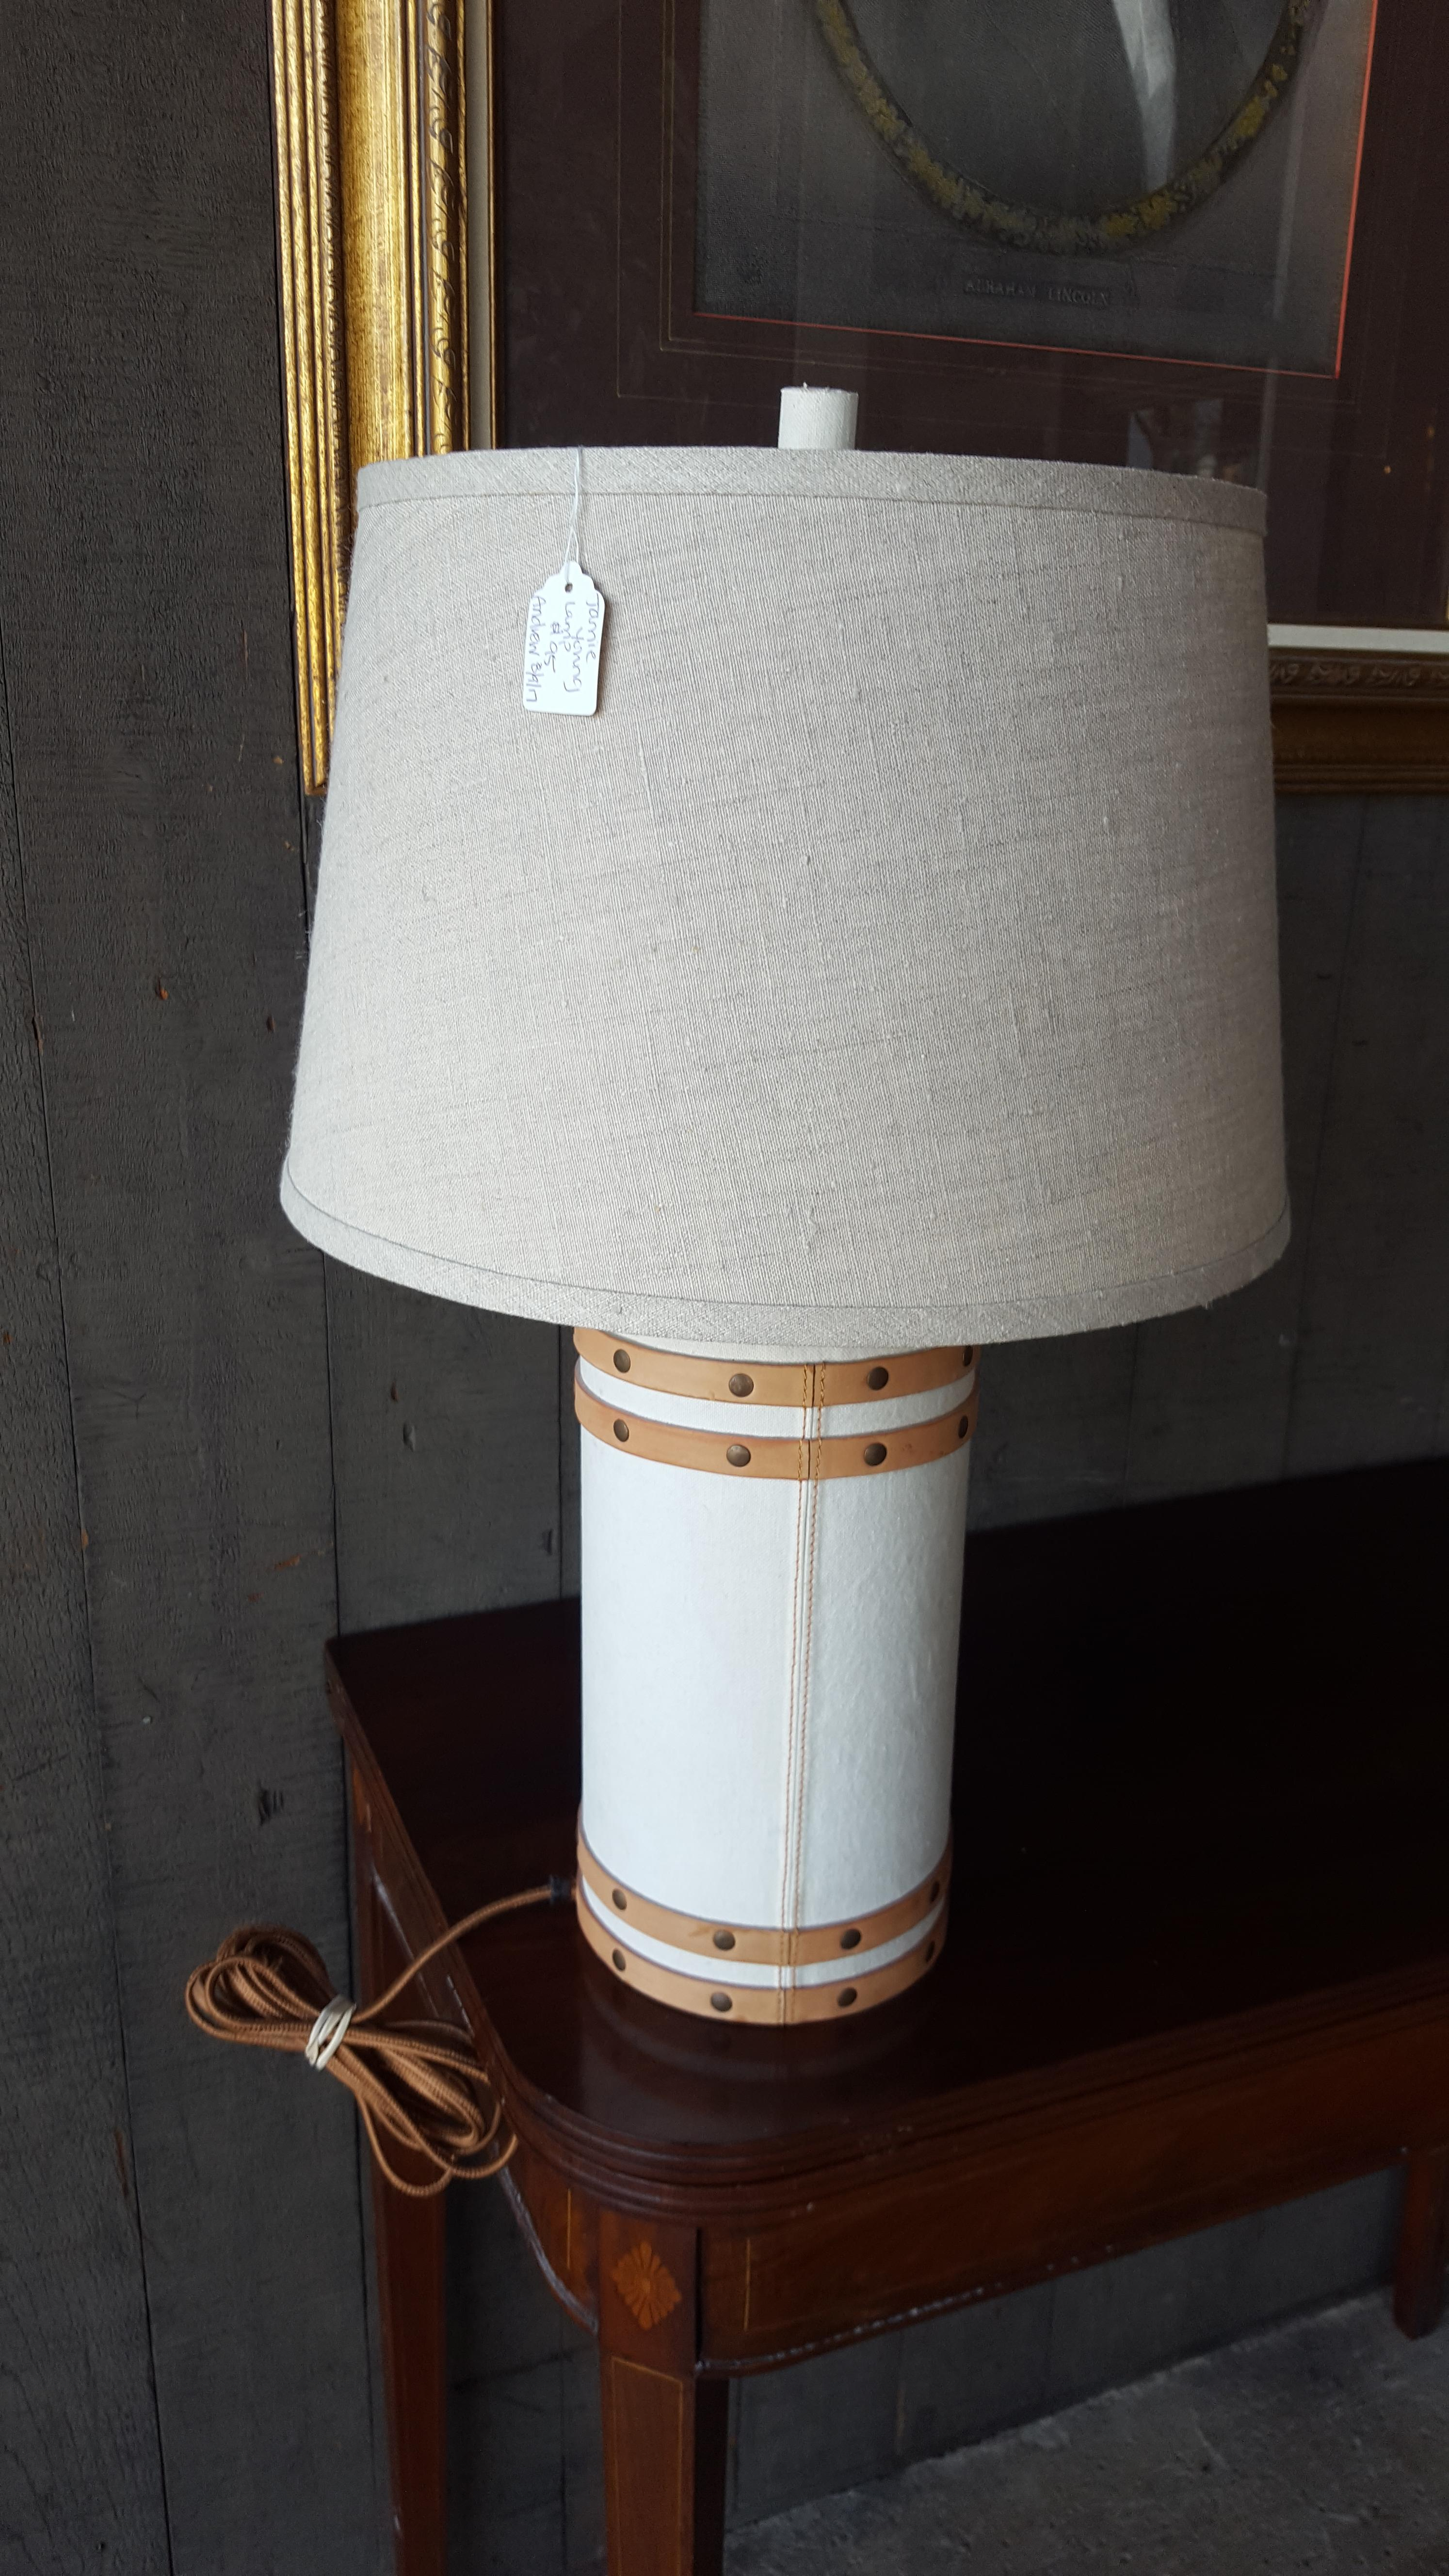 Beautiful upholstered table lamp, by Lighting, Lamps Price: $95.00